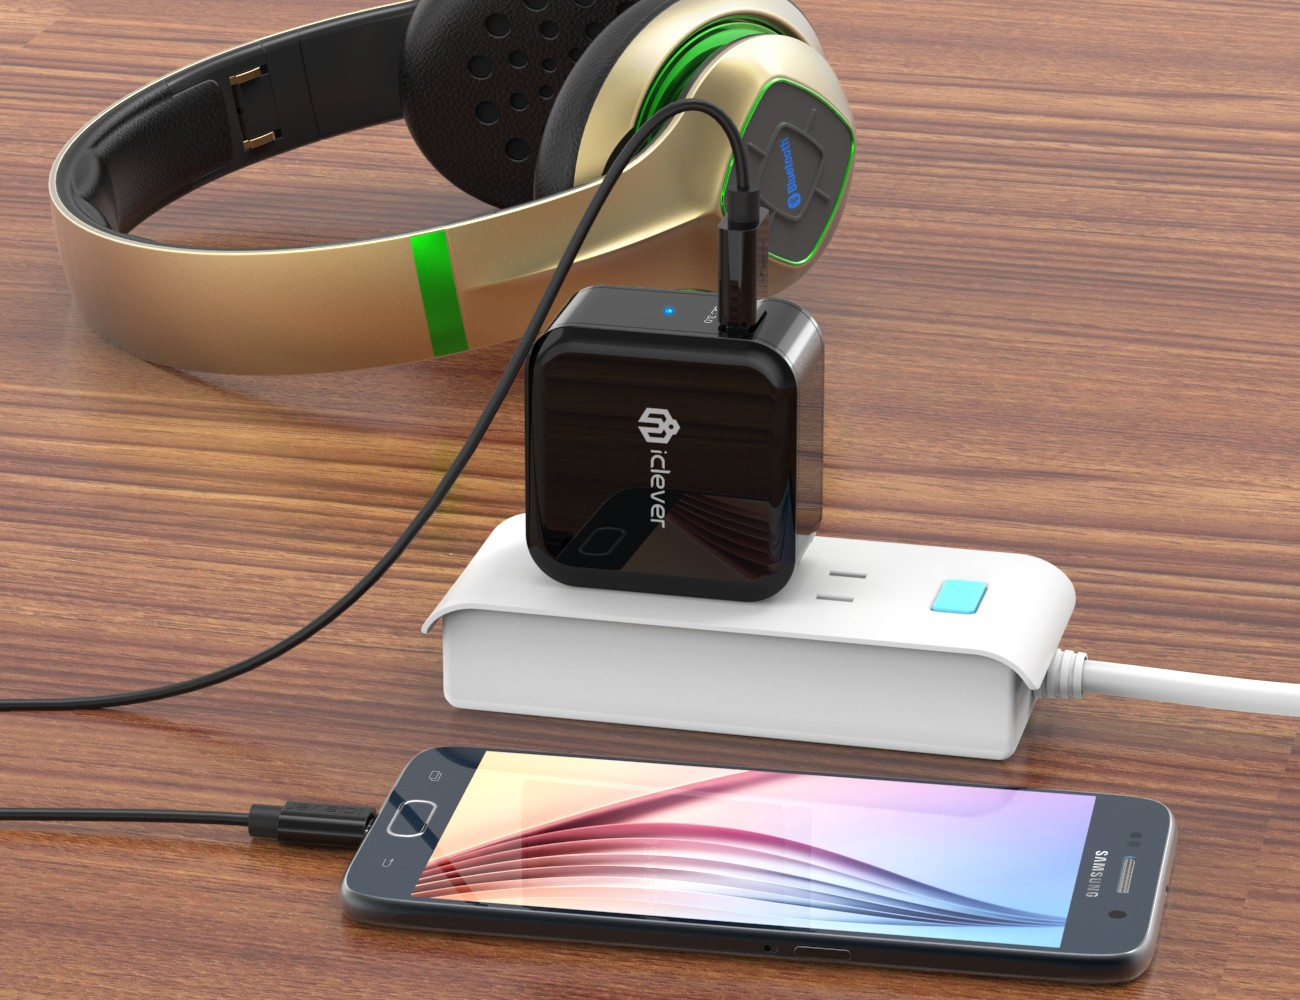 iClever BoostCube Quick Charge 3.0